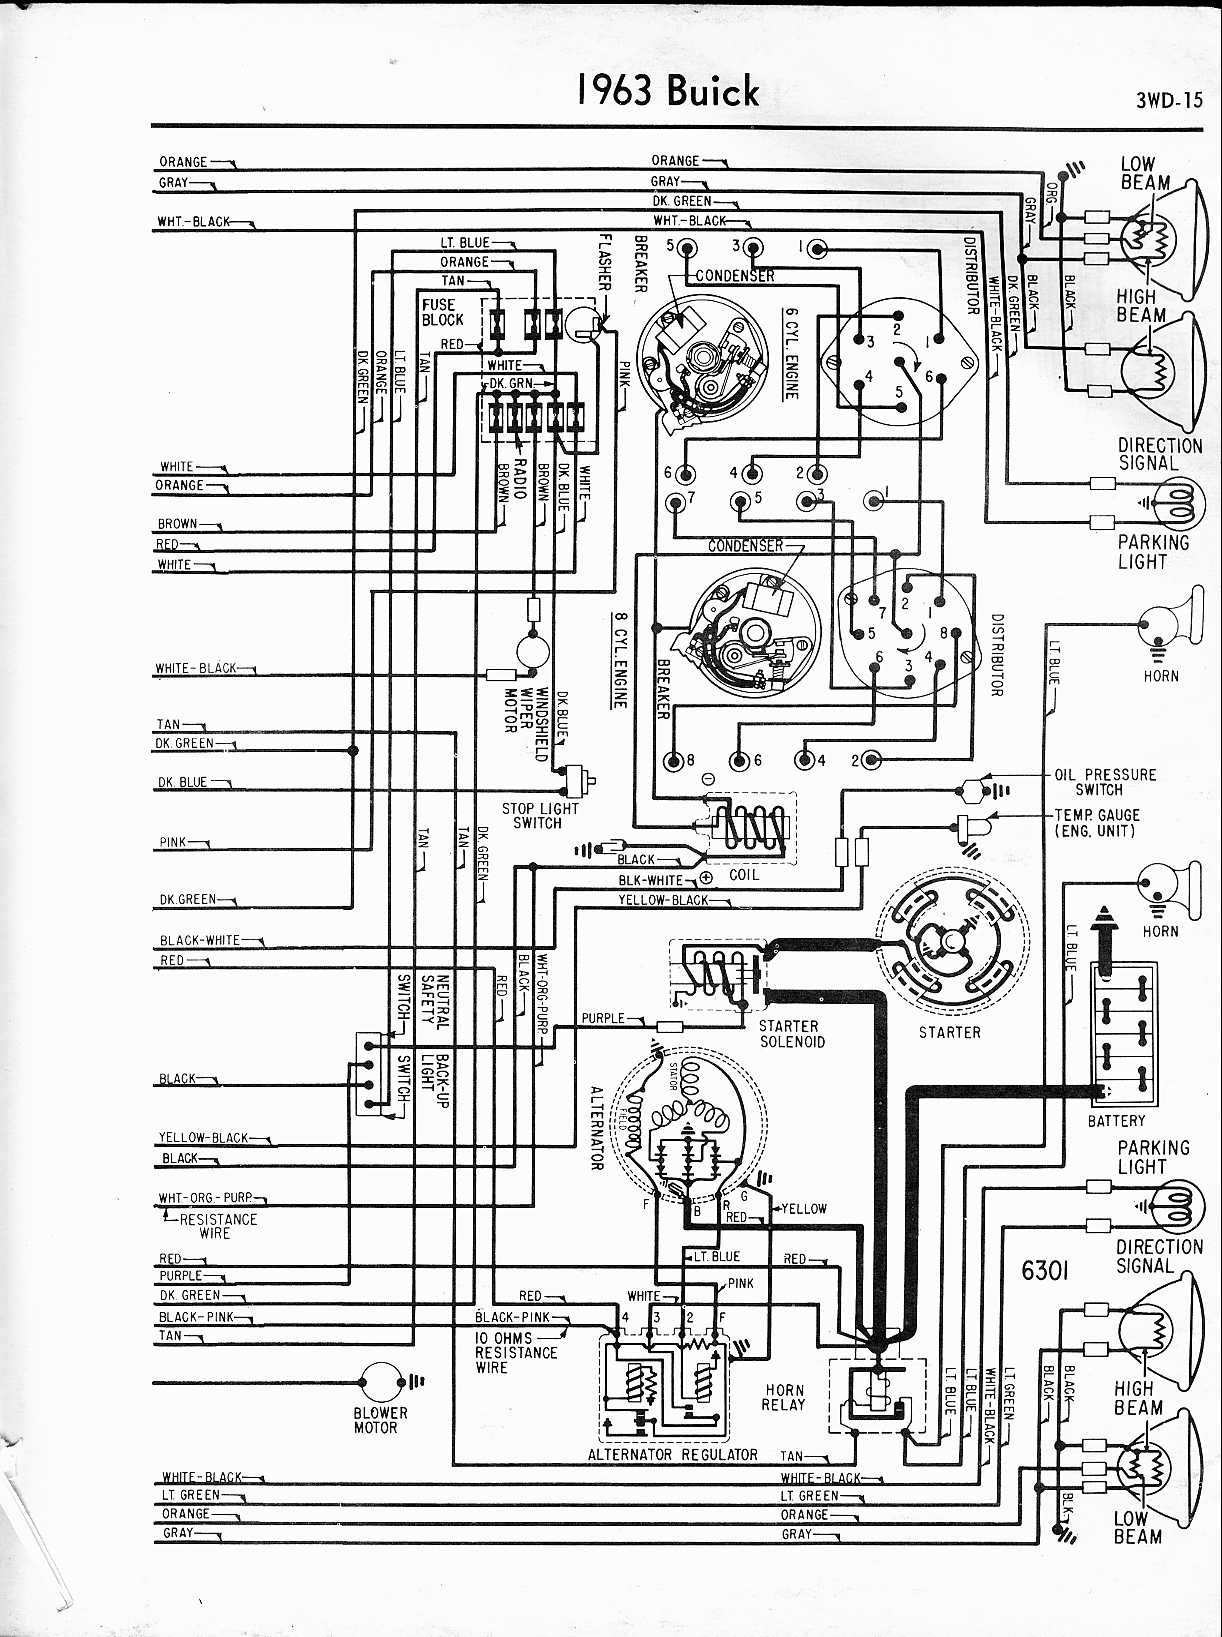 96 Buick Riviera Wiring Schematic Library 95 Engine 1963 Harness Diagrams Schematics Rh Sbarquitectura Co 66 Diagram